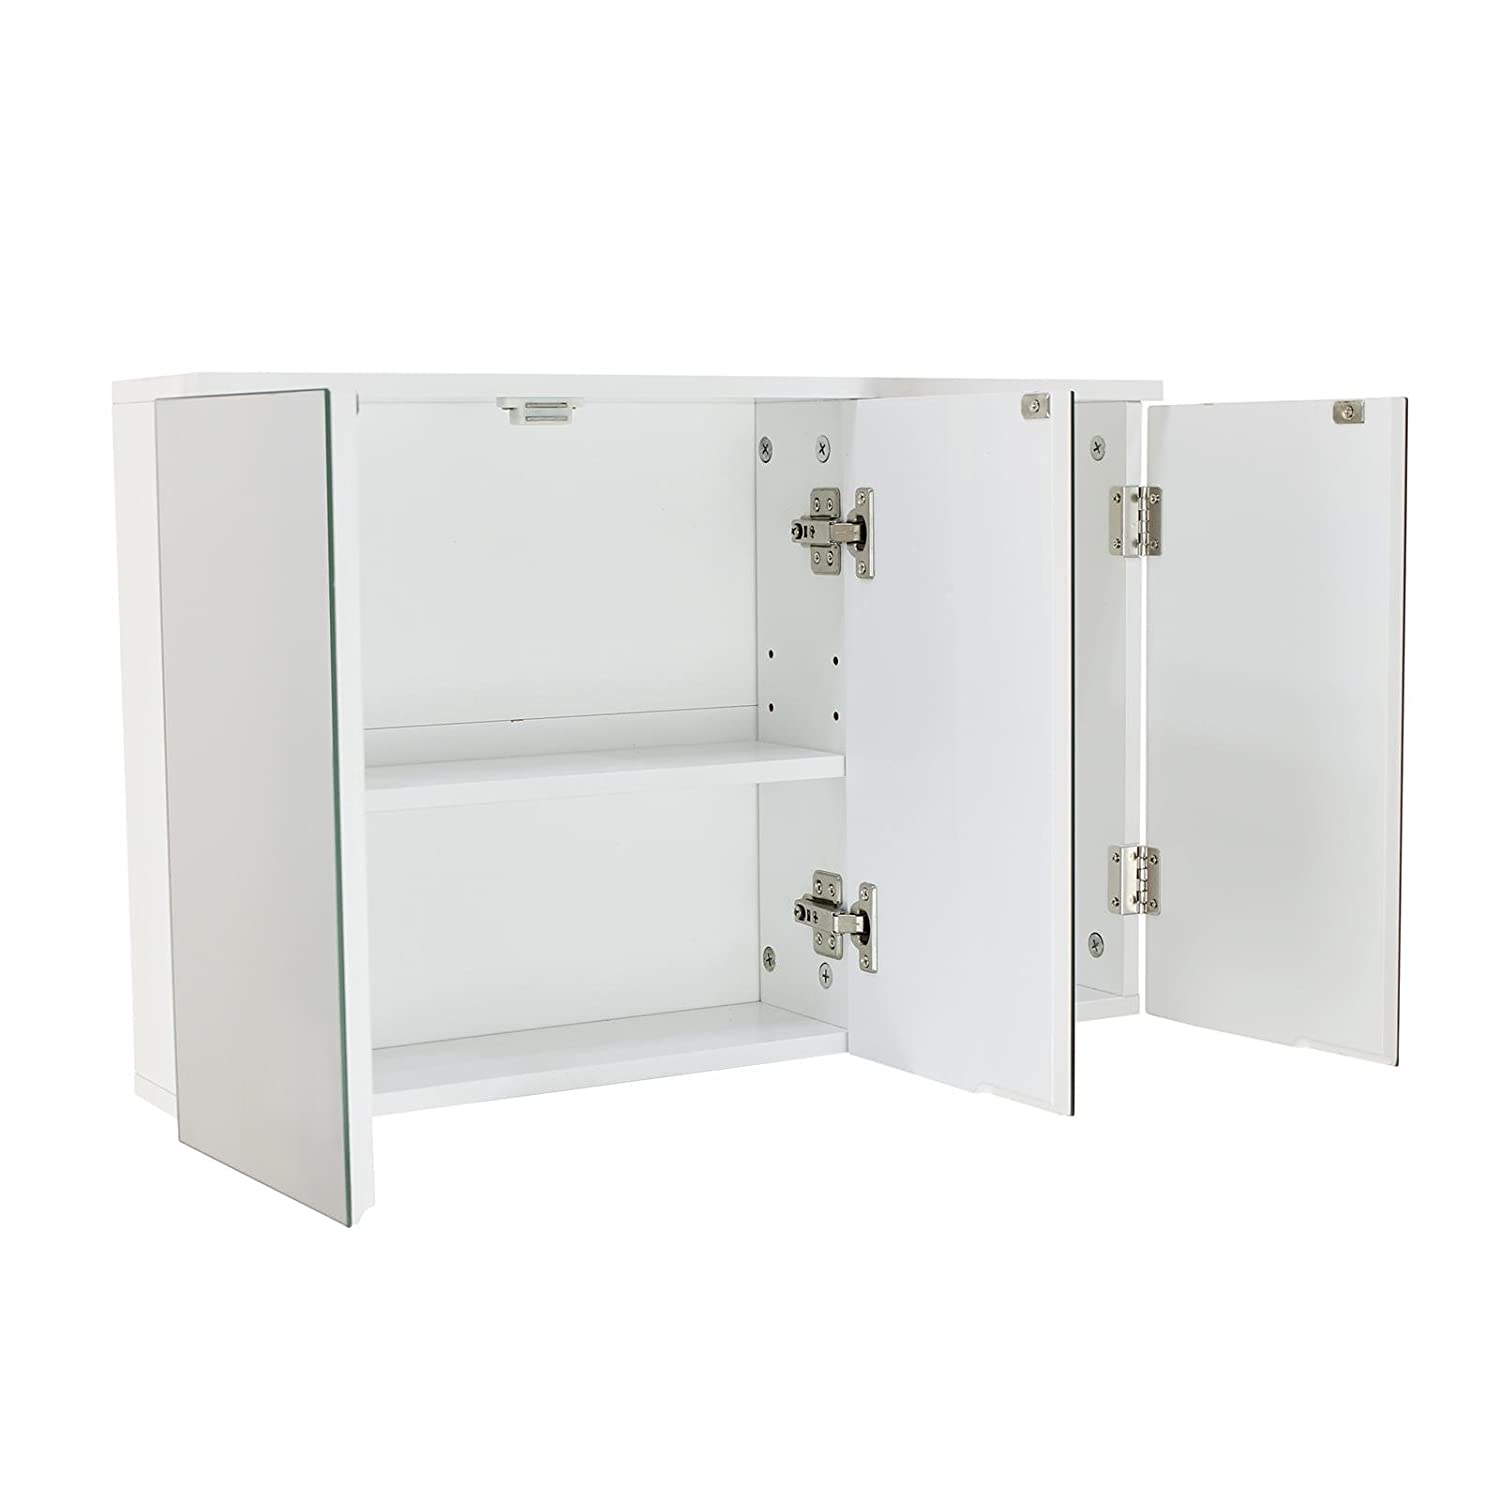 House and Homestyle Tripple Mirrored Door Wall cabinet